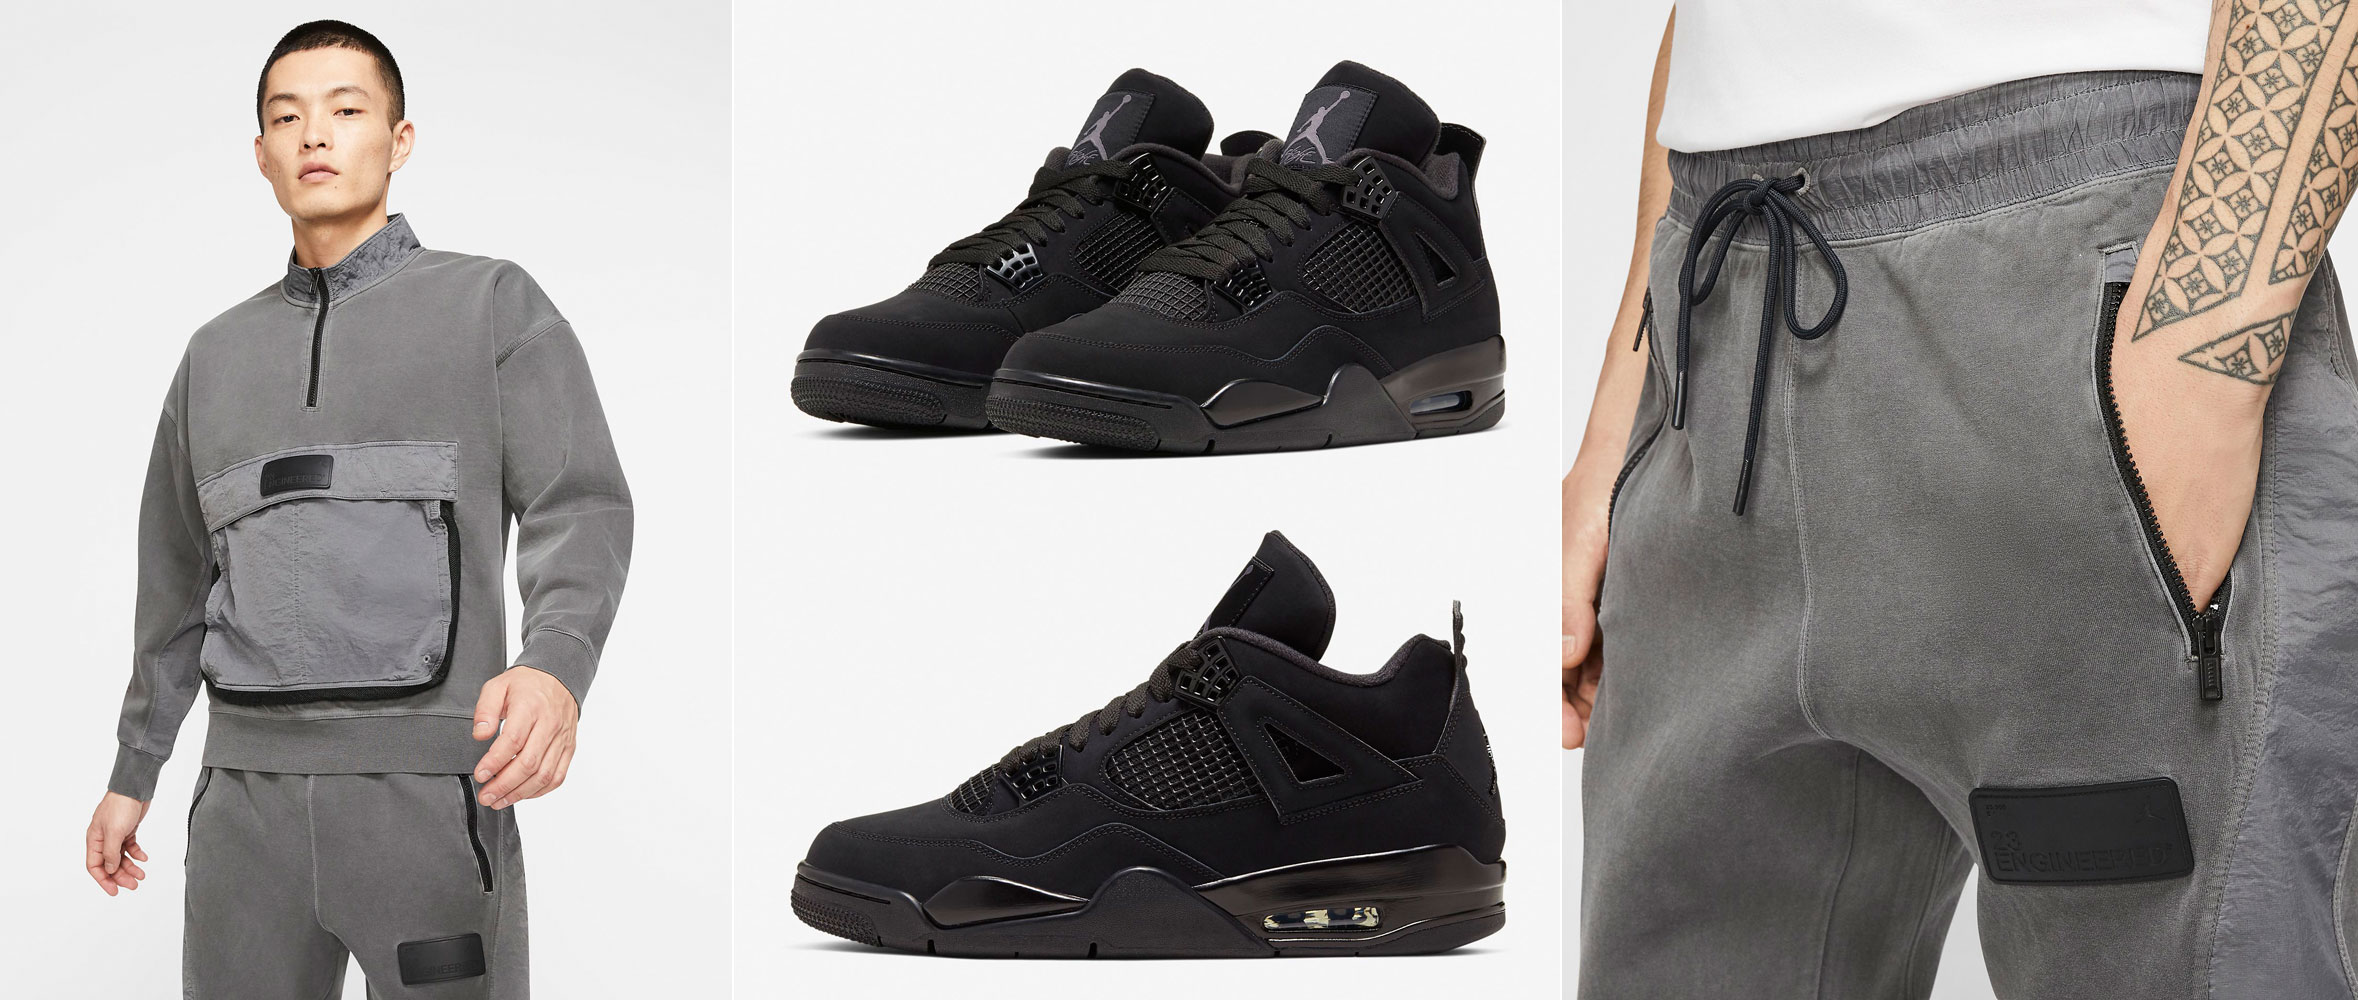 air-jordan-4-black-cat-matching-outfit